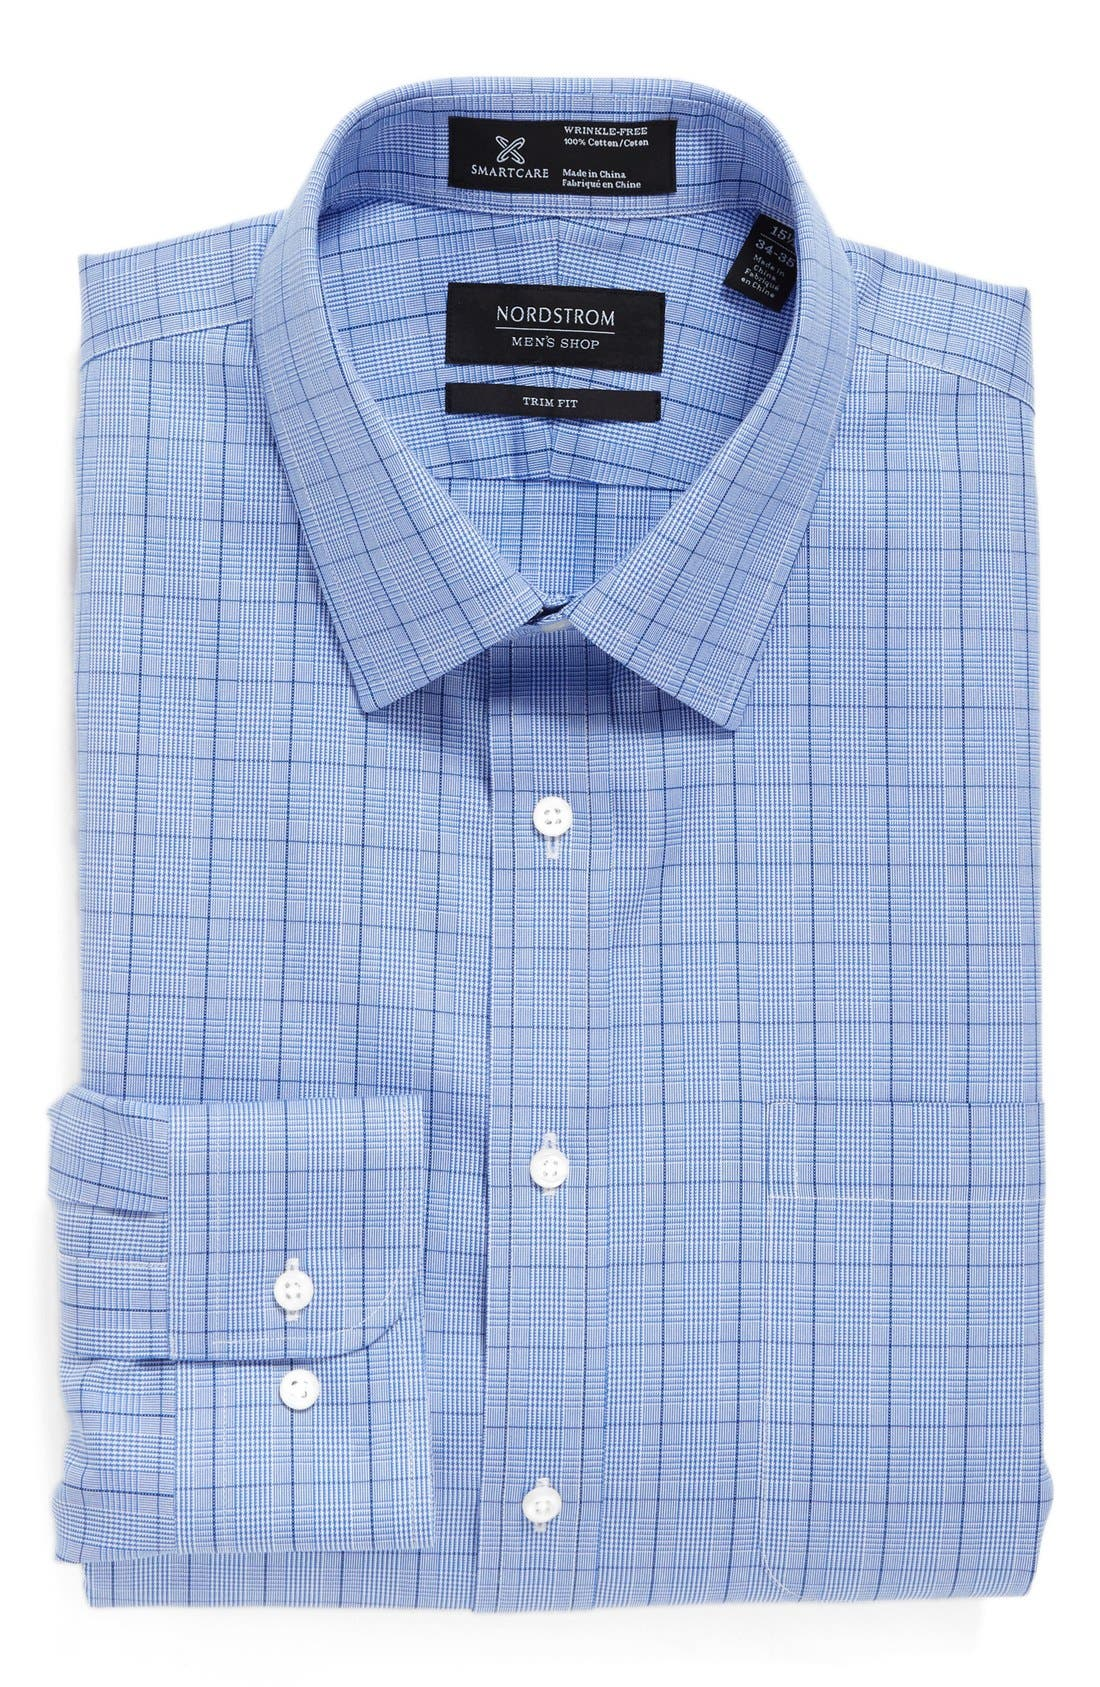 Main Image - Nordstrom Men's Shop Smartcare™ Trim Fit Plaid Dress Shirt